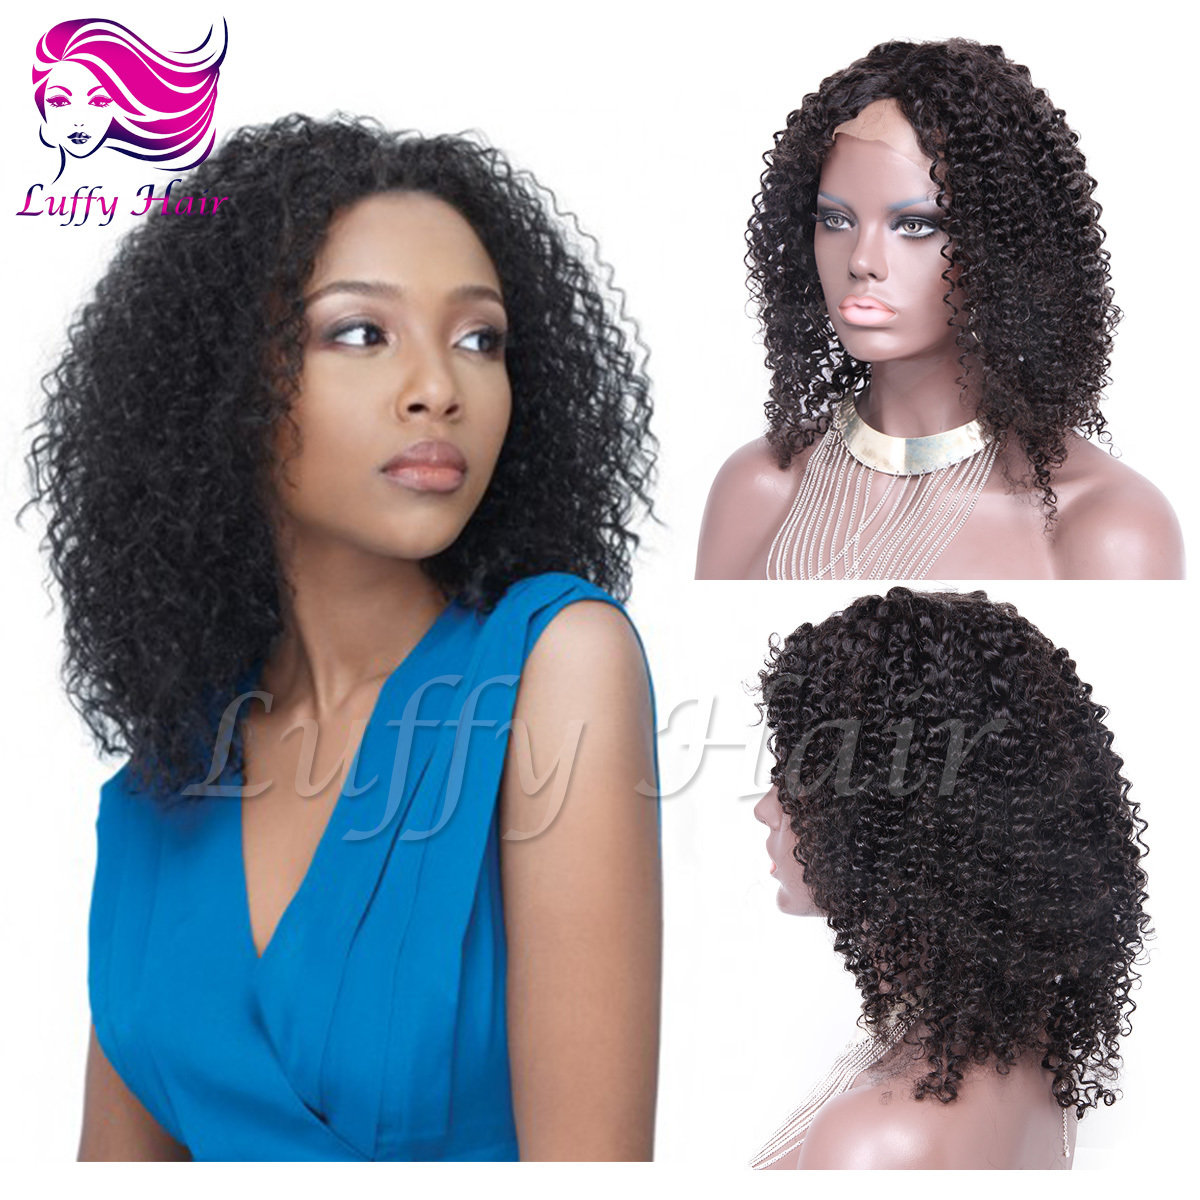 8A Virgin Human Hair Kinky Curly Wig - KWL051